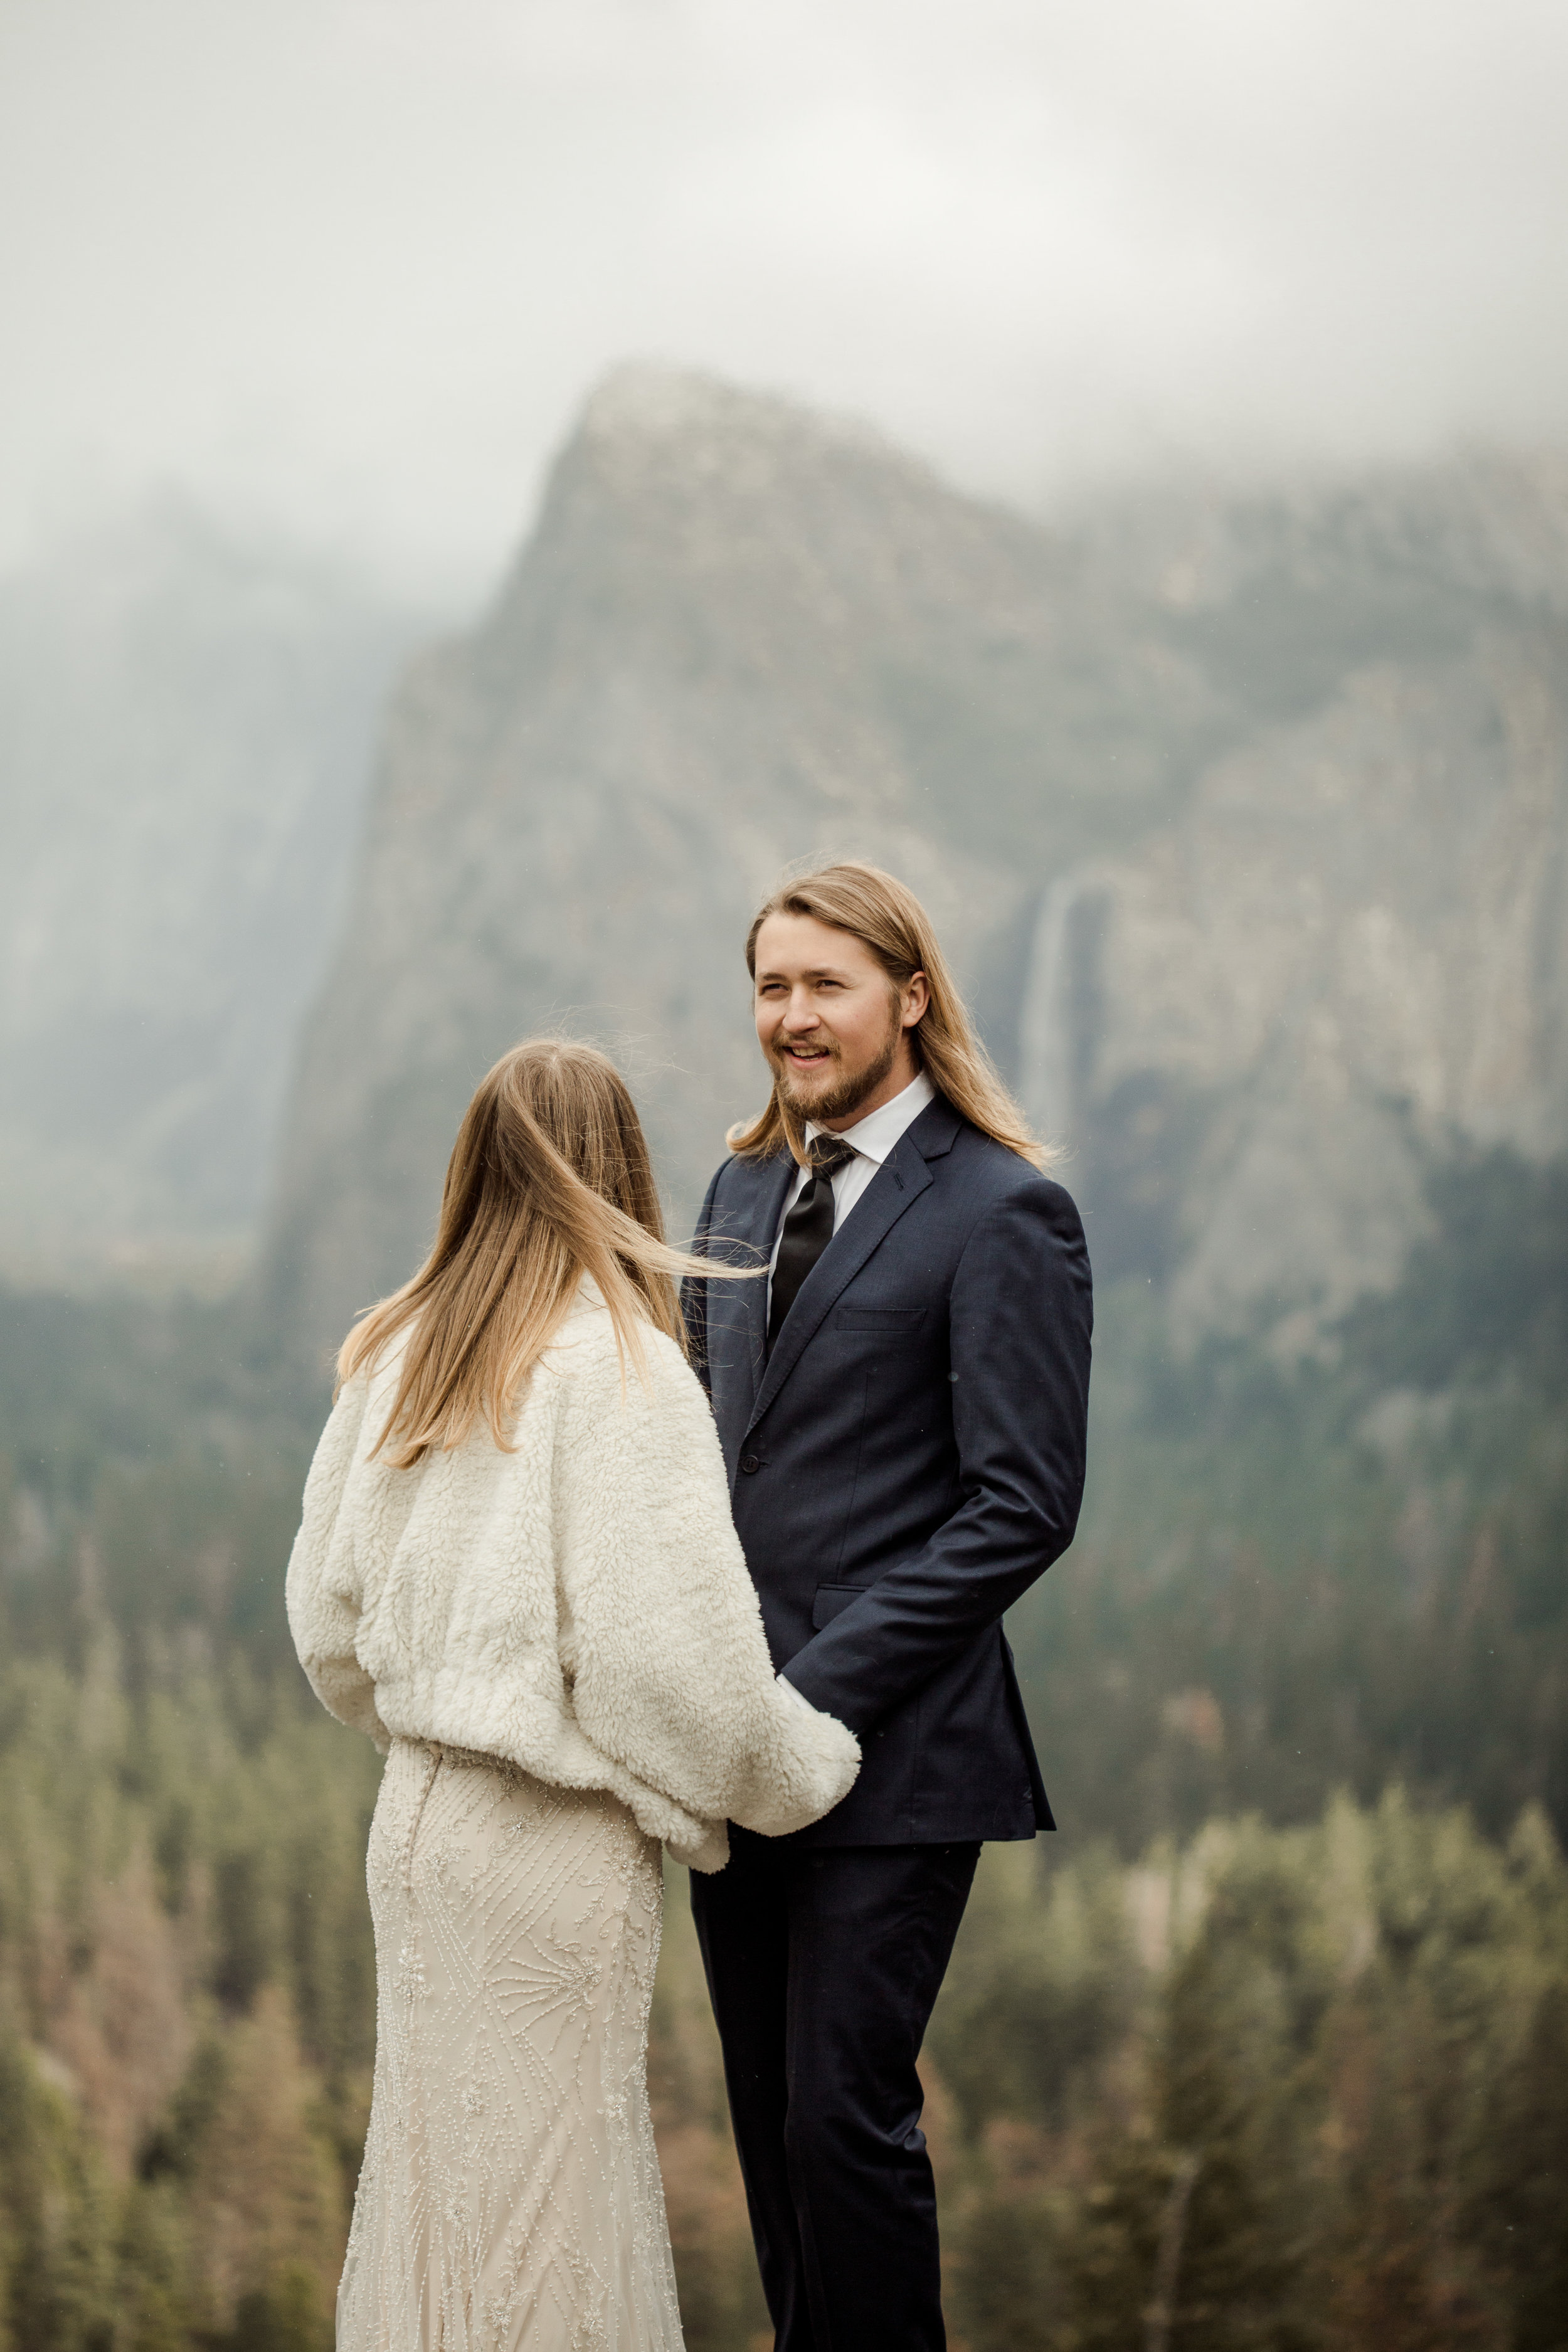 nicole-daacke-photography-yousemite-national-park-elopement-photographer-winter-cloud-moody-elope-inspiration-yosemite-valley-tunnel-view-winter-cloud-fog-weather-wedding-photos-8.jpg